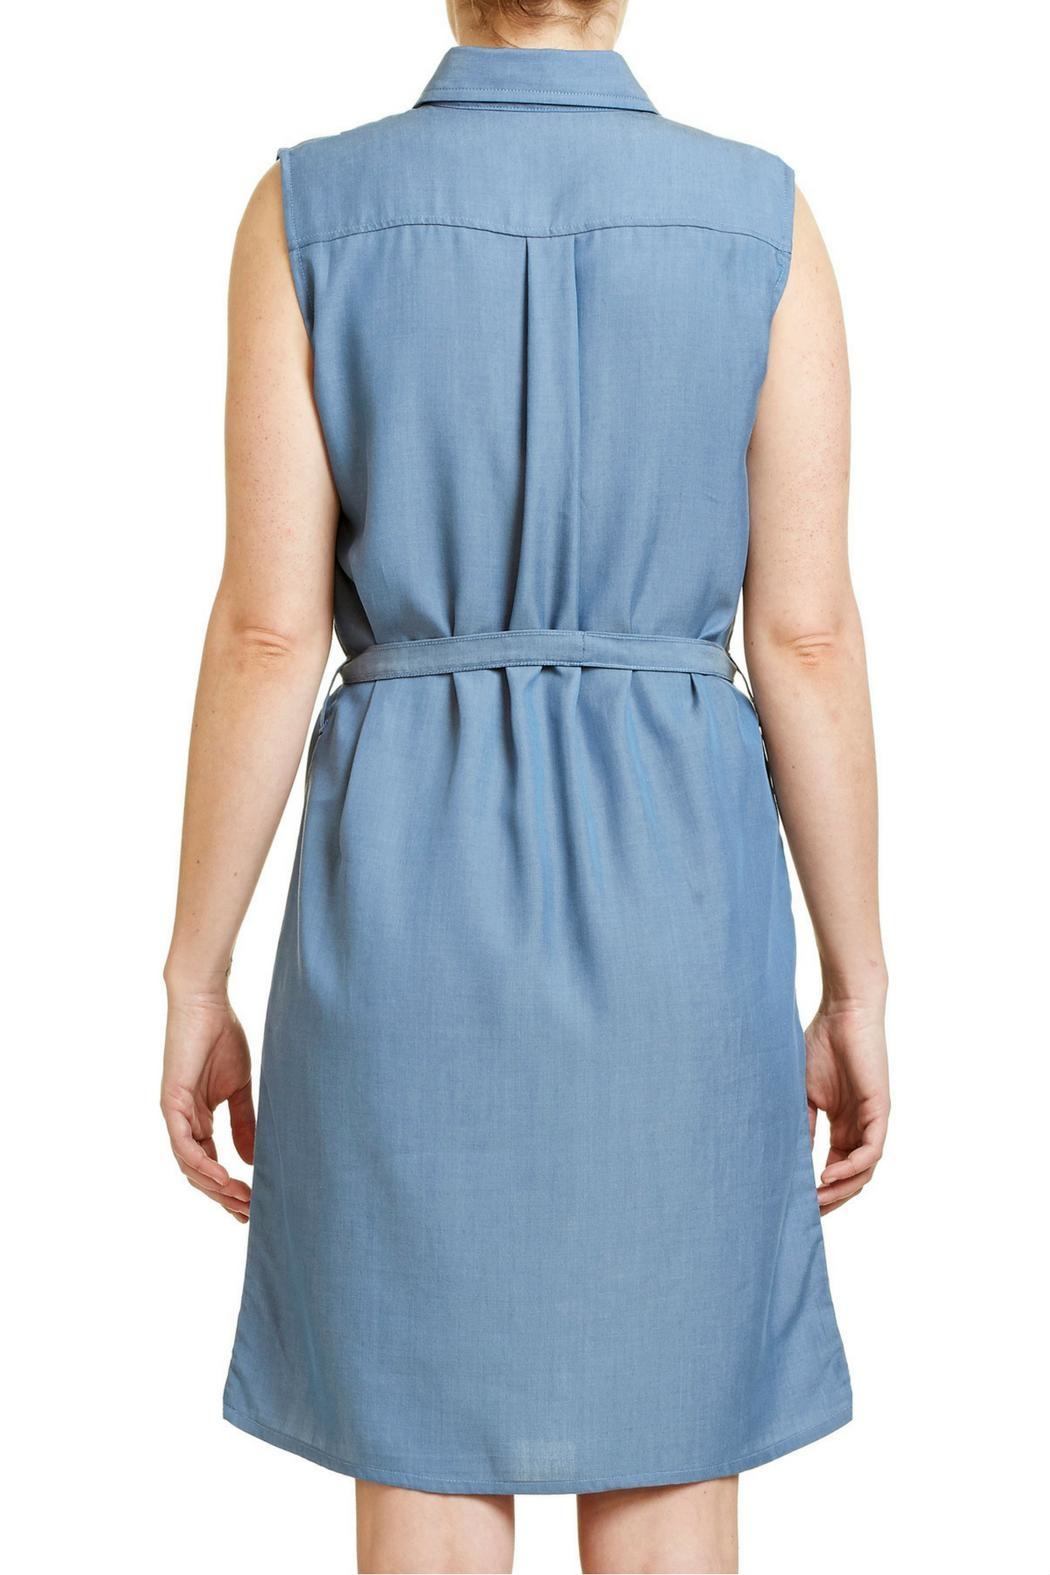 FIG Clothing Luc Dress - Front Full Image